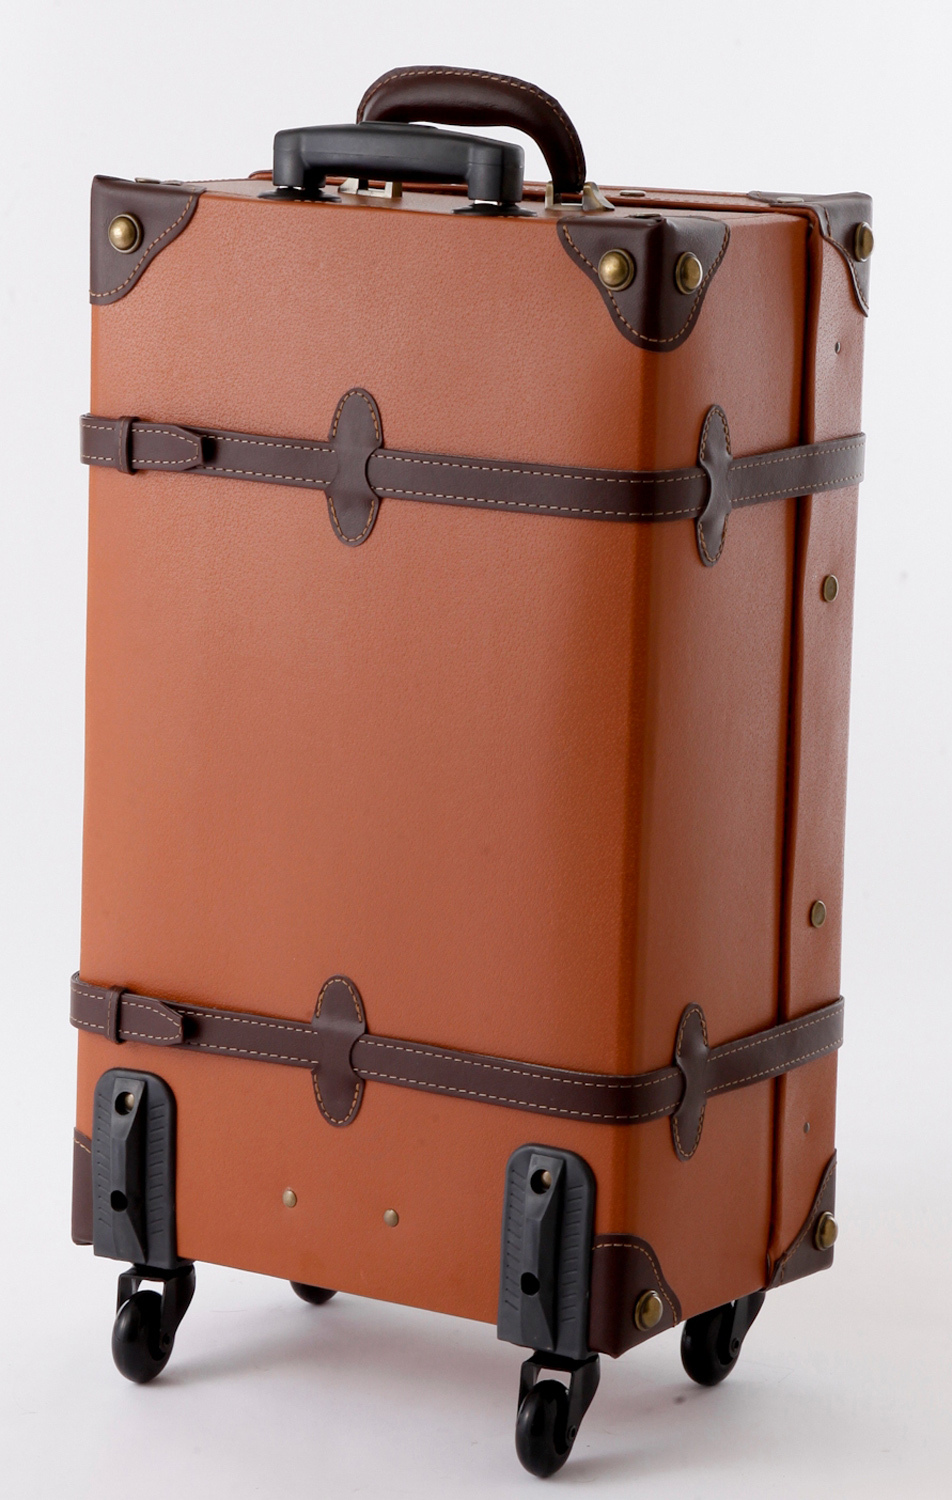 Vintage Suitcase Classic Trolley Luggage Bag Trunk Carry Japan ...